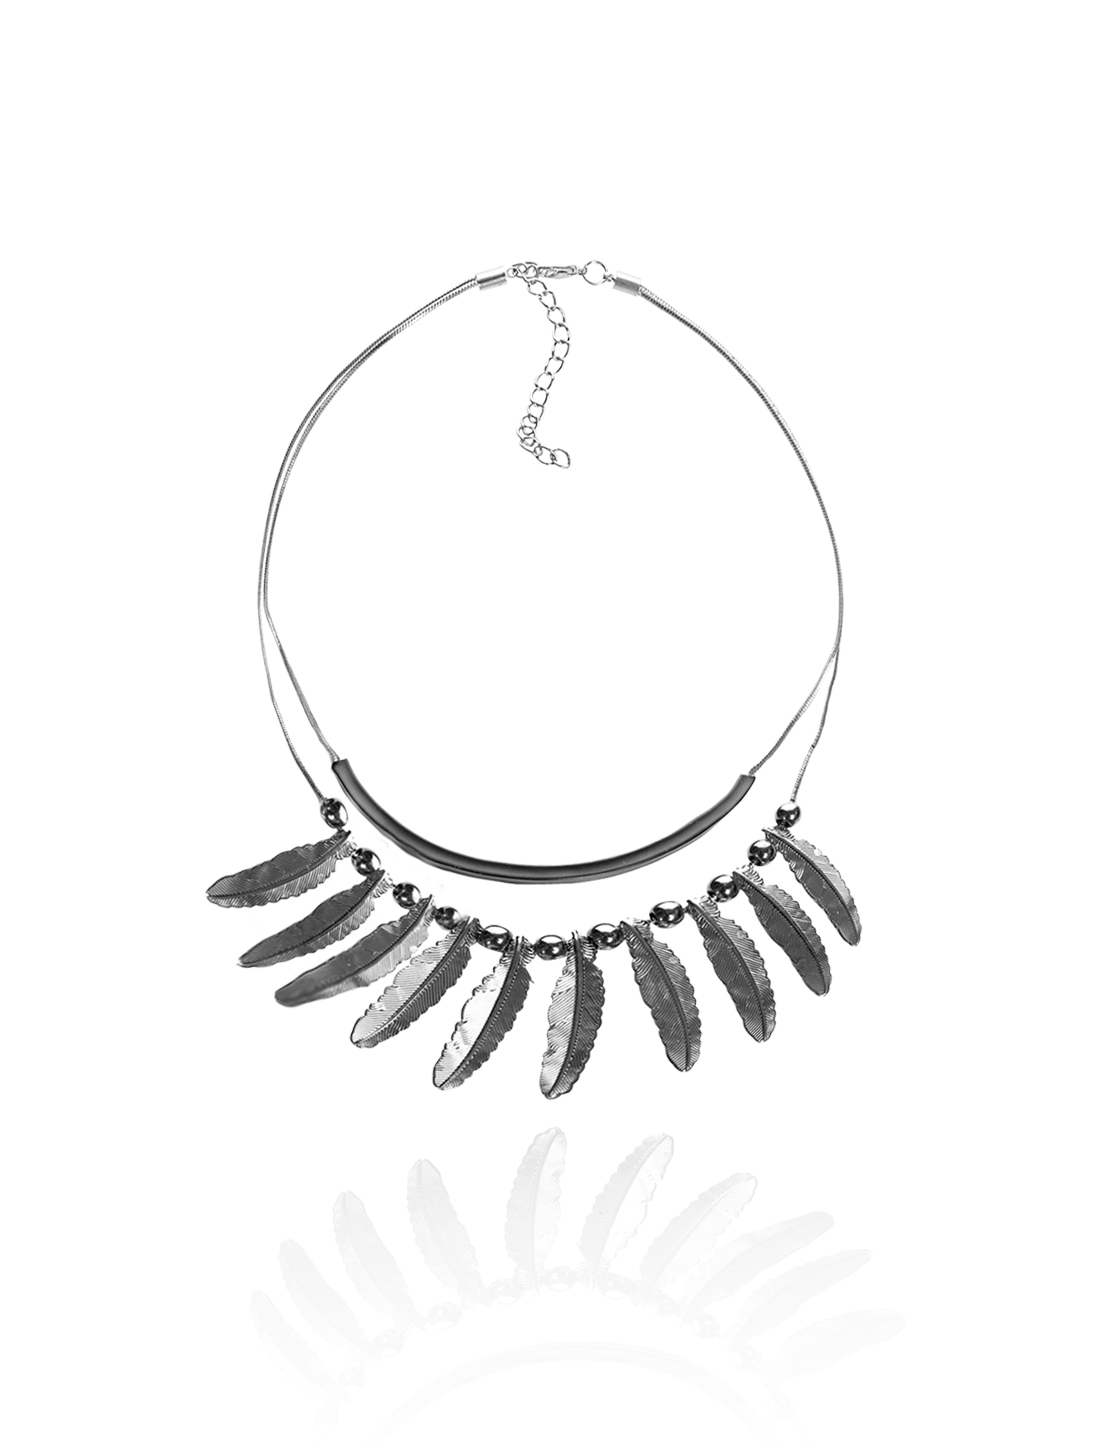 Gray Chain Leaf Statement Alloy Pendant Bib Chunky Necklace Choker